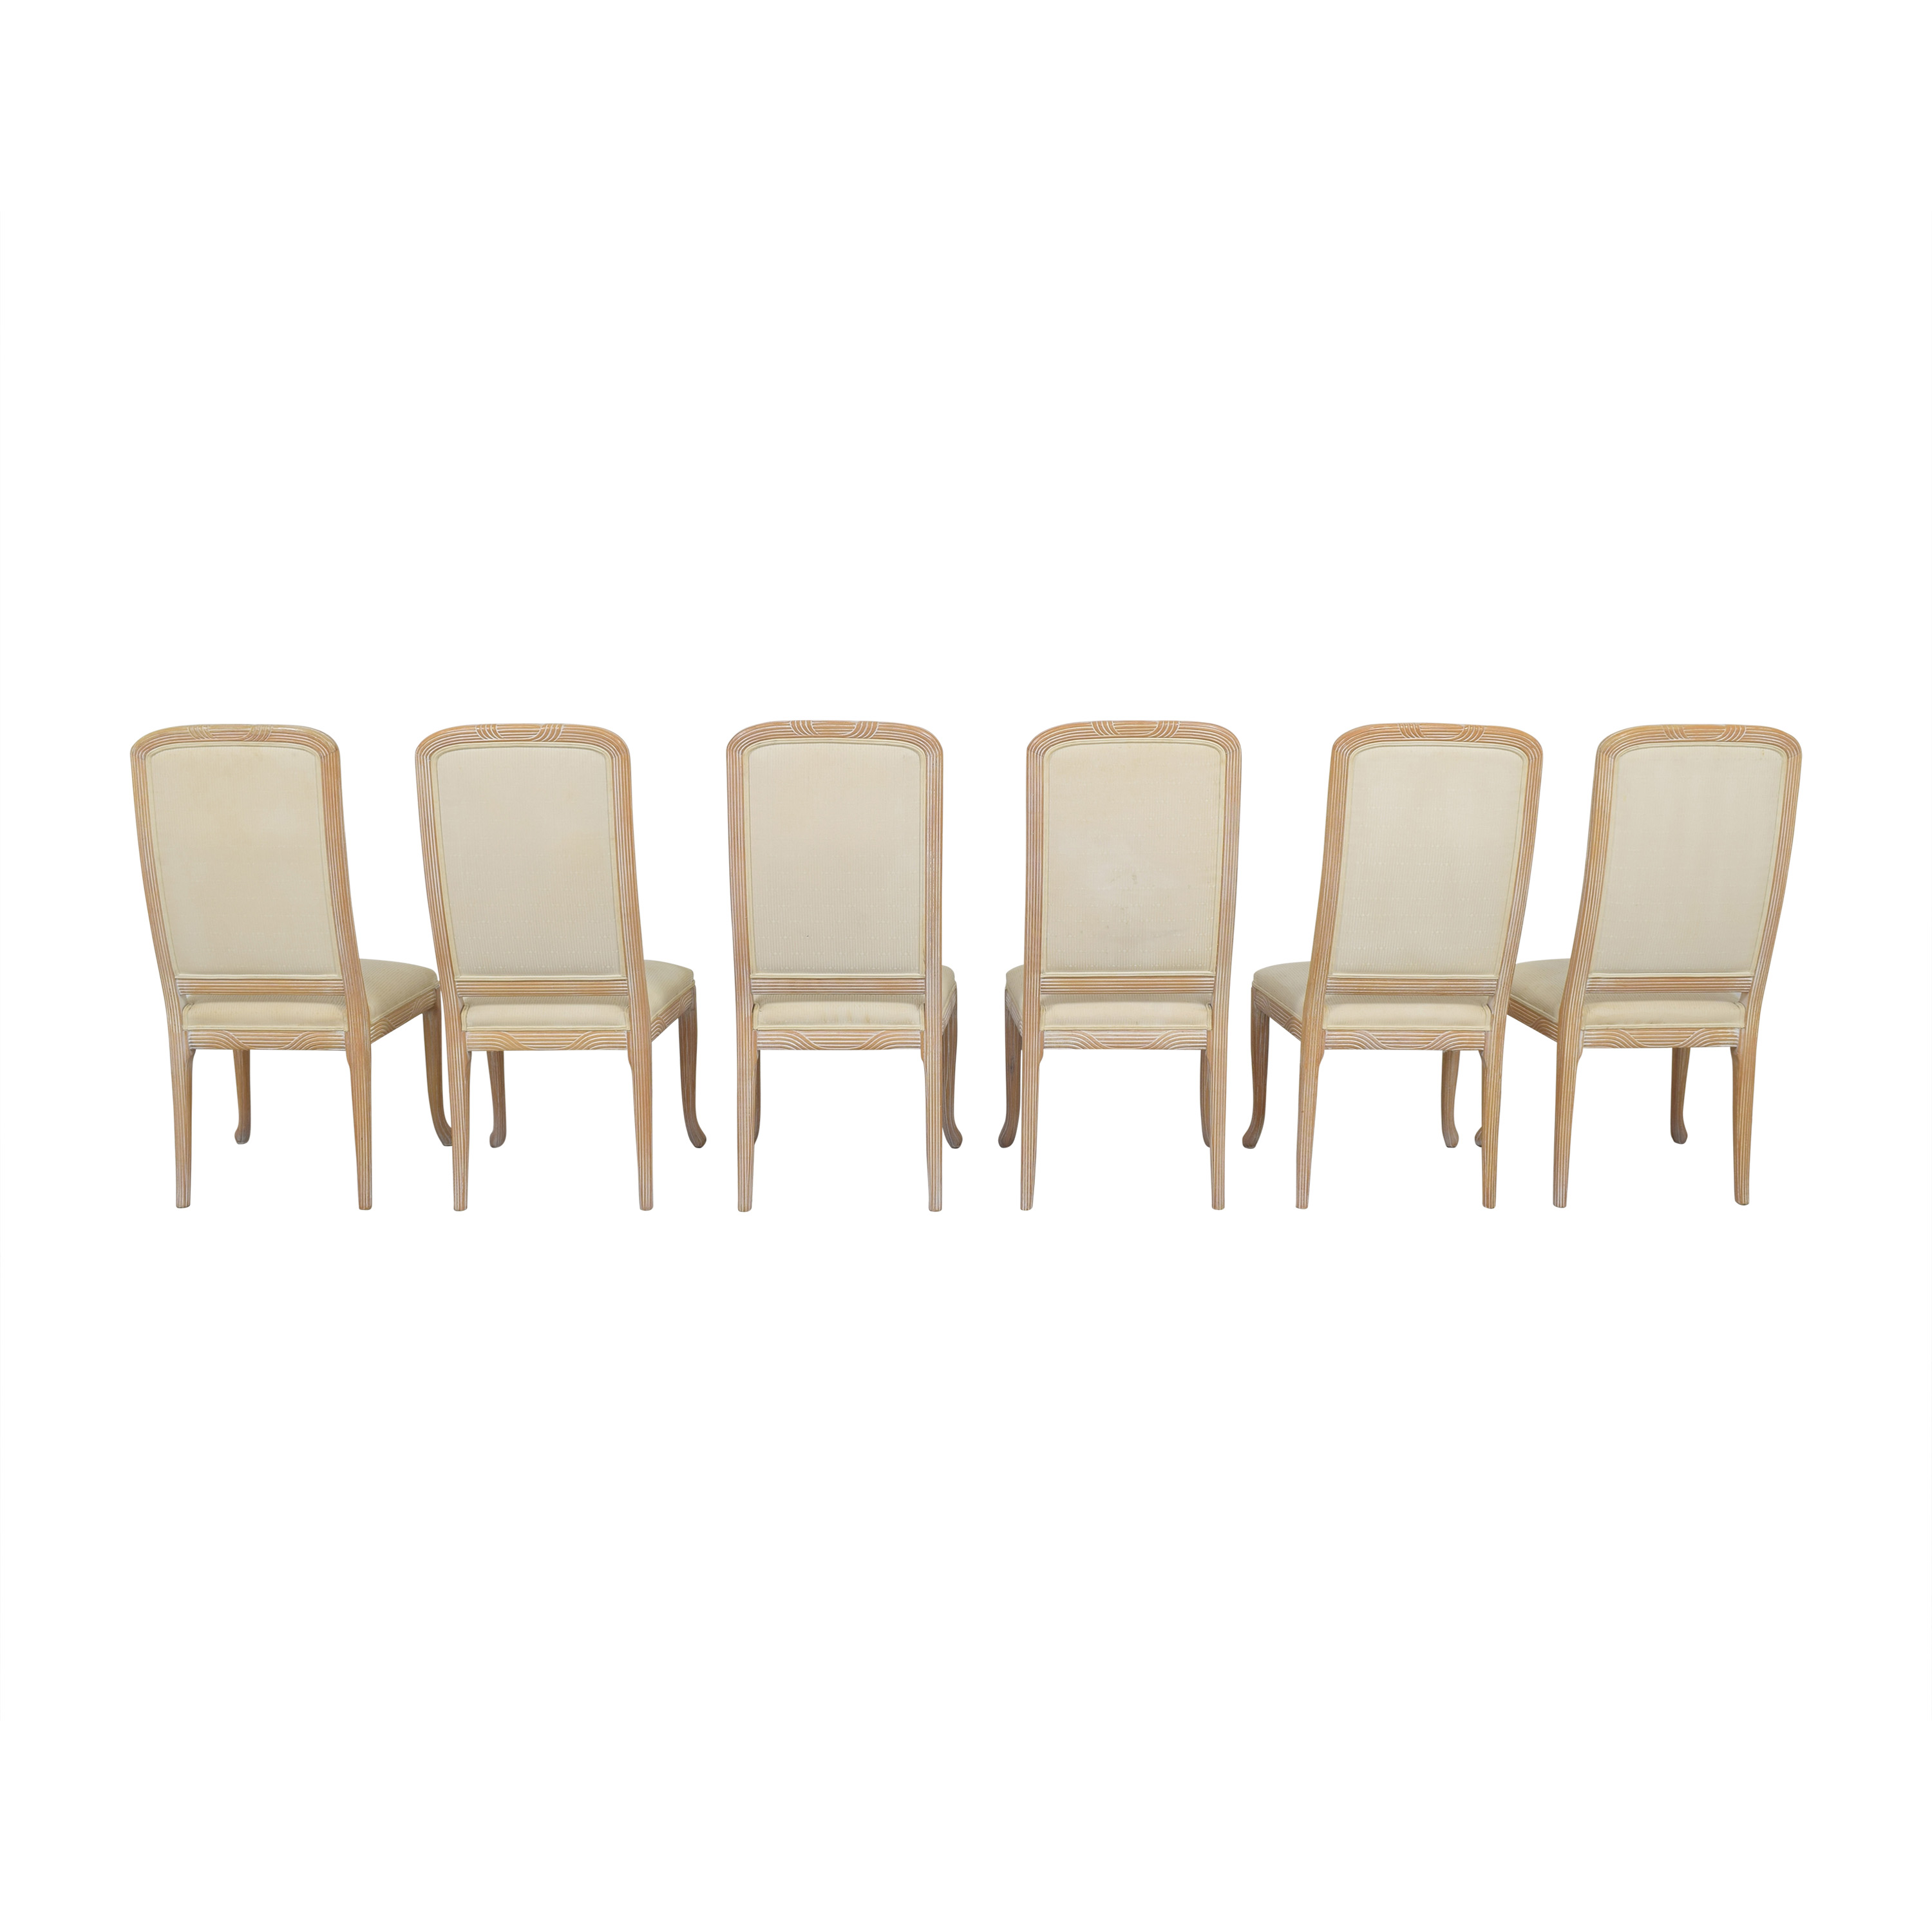 Buying & Design Buying & Design Upholstered Dining Side Chairs for sale